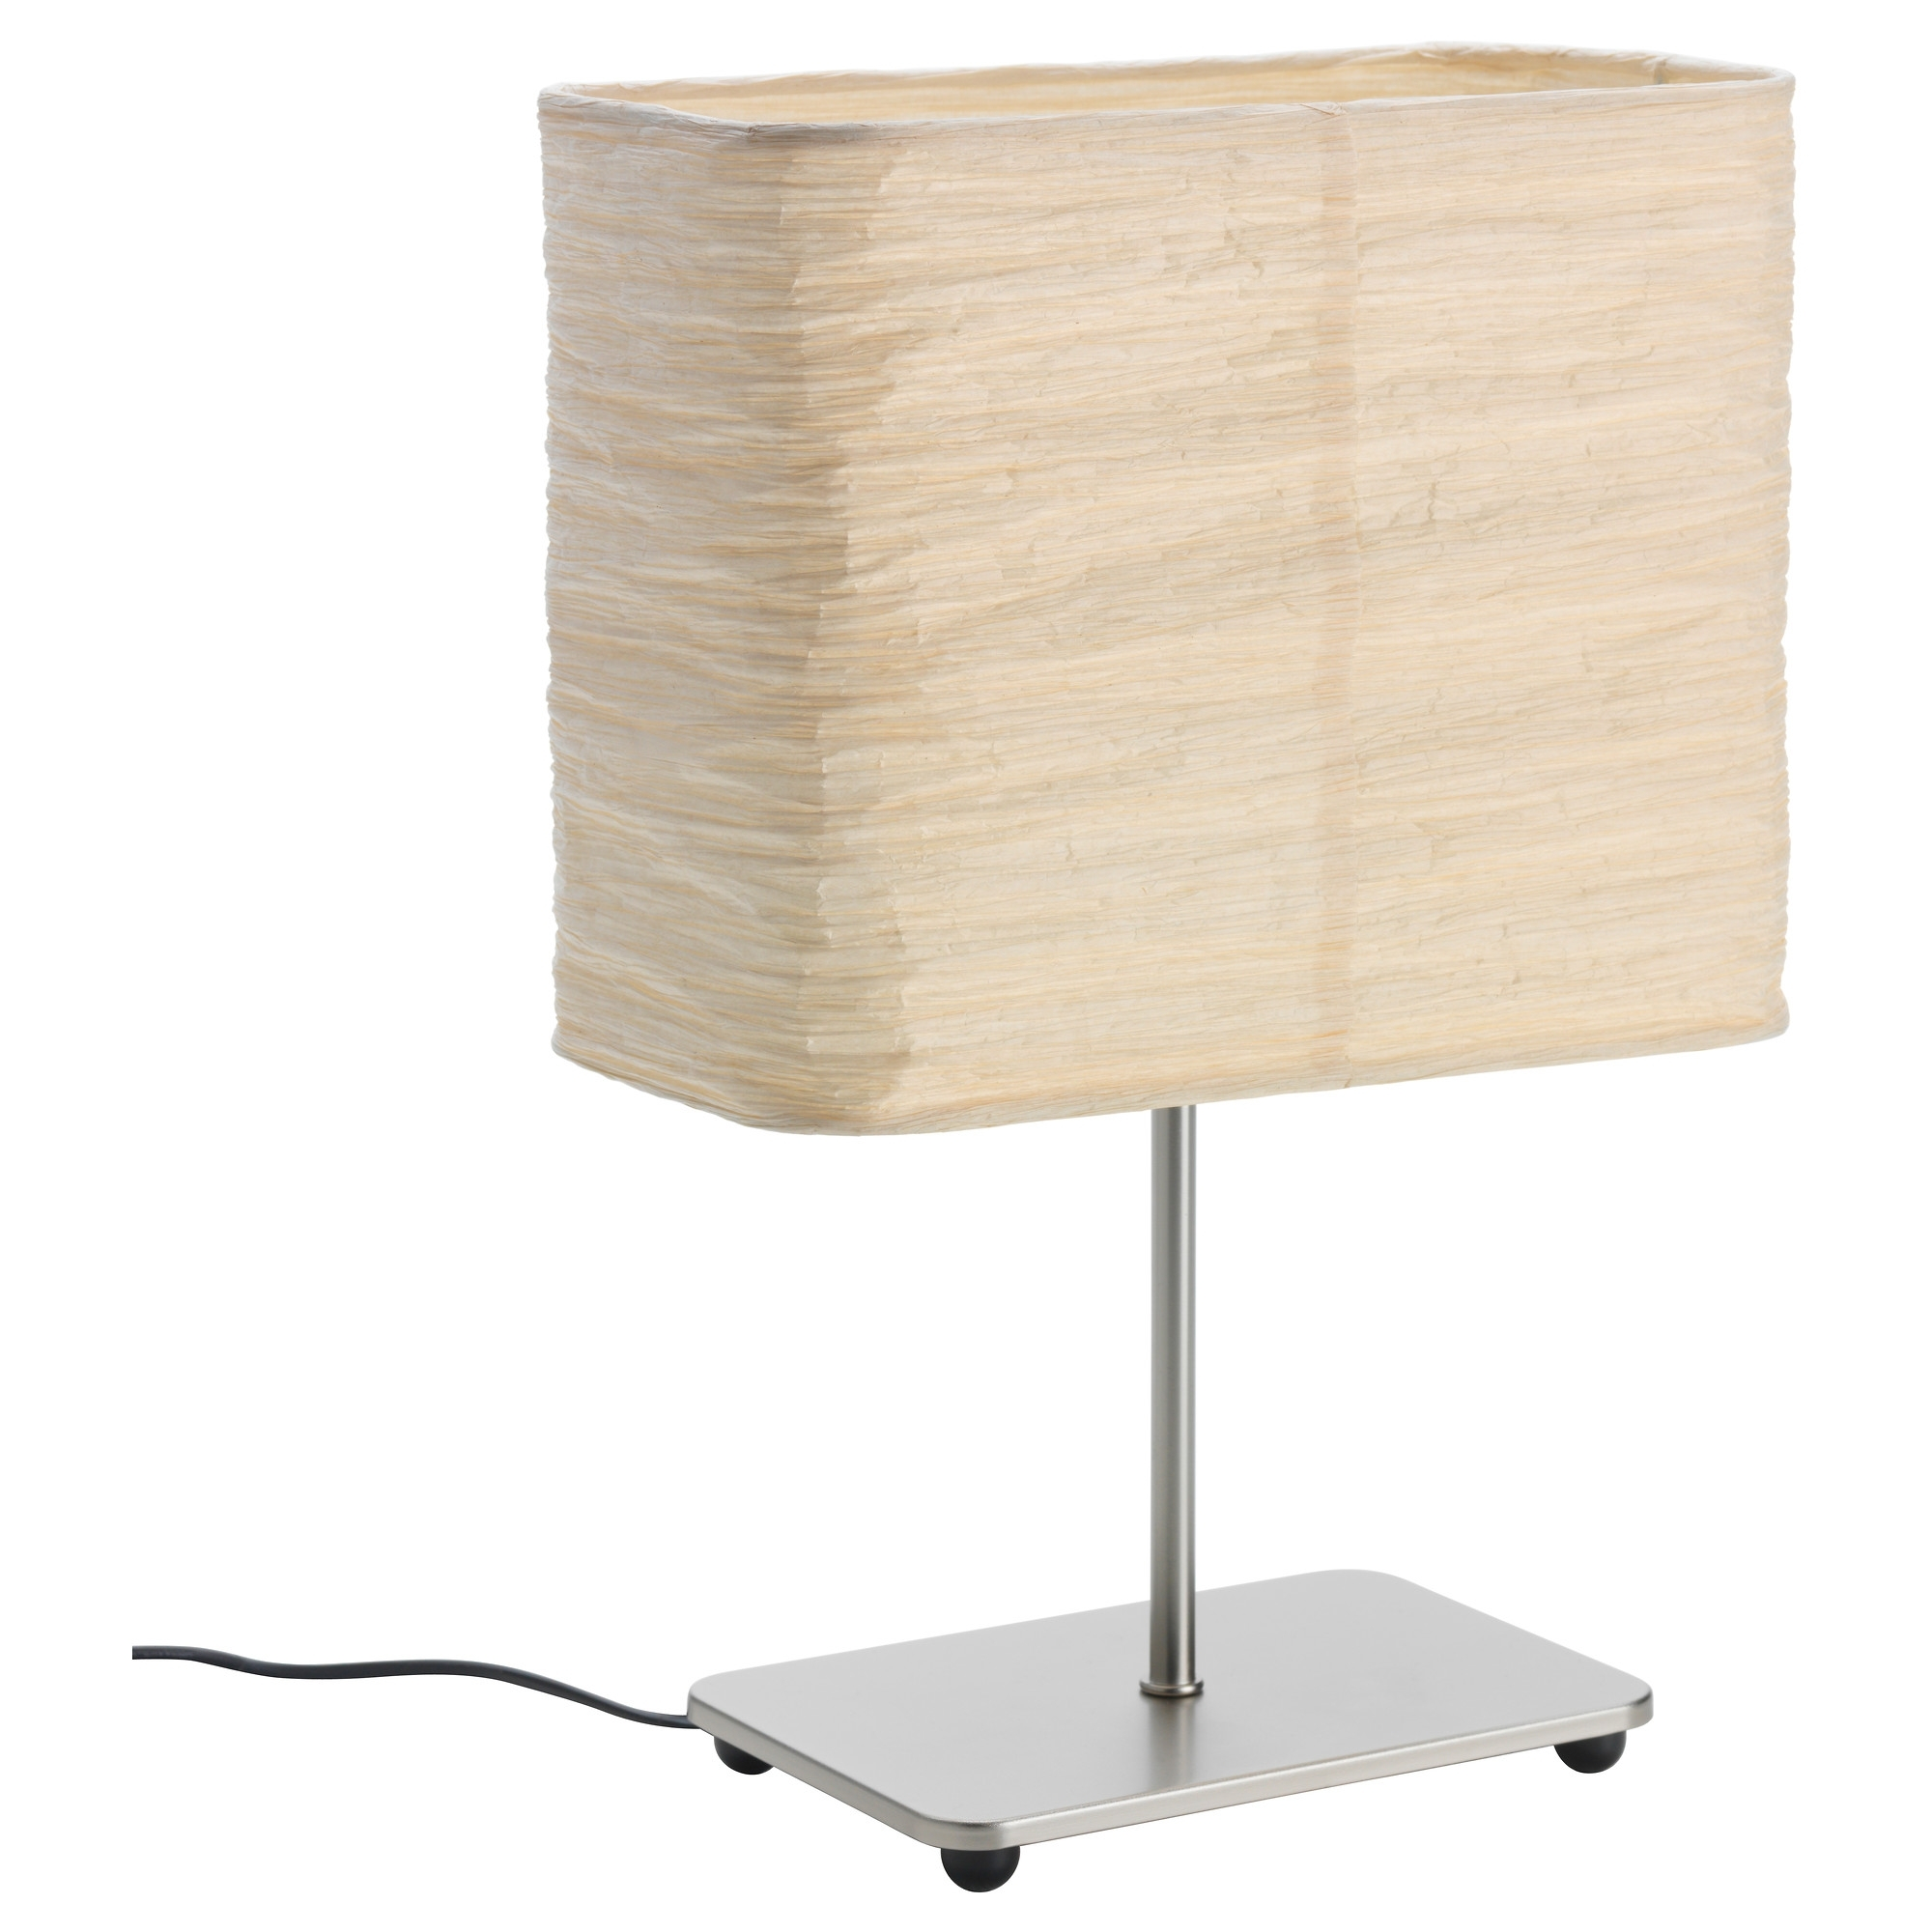 71 Most Splendiferous Ikea Bedside Lamps Dunelm Table Large For Within Latest Debenhams Table Lamps For Living Room (View 3 of 20)